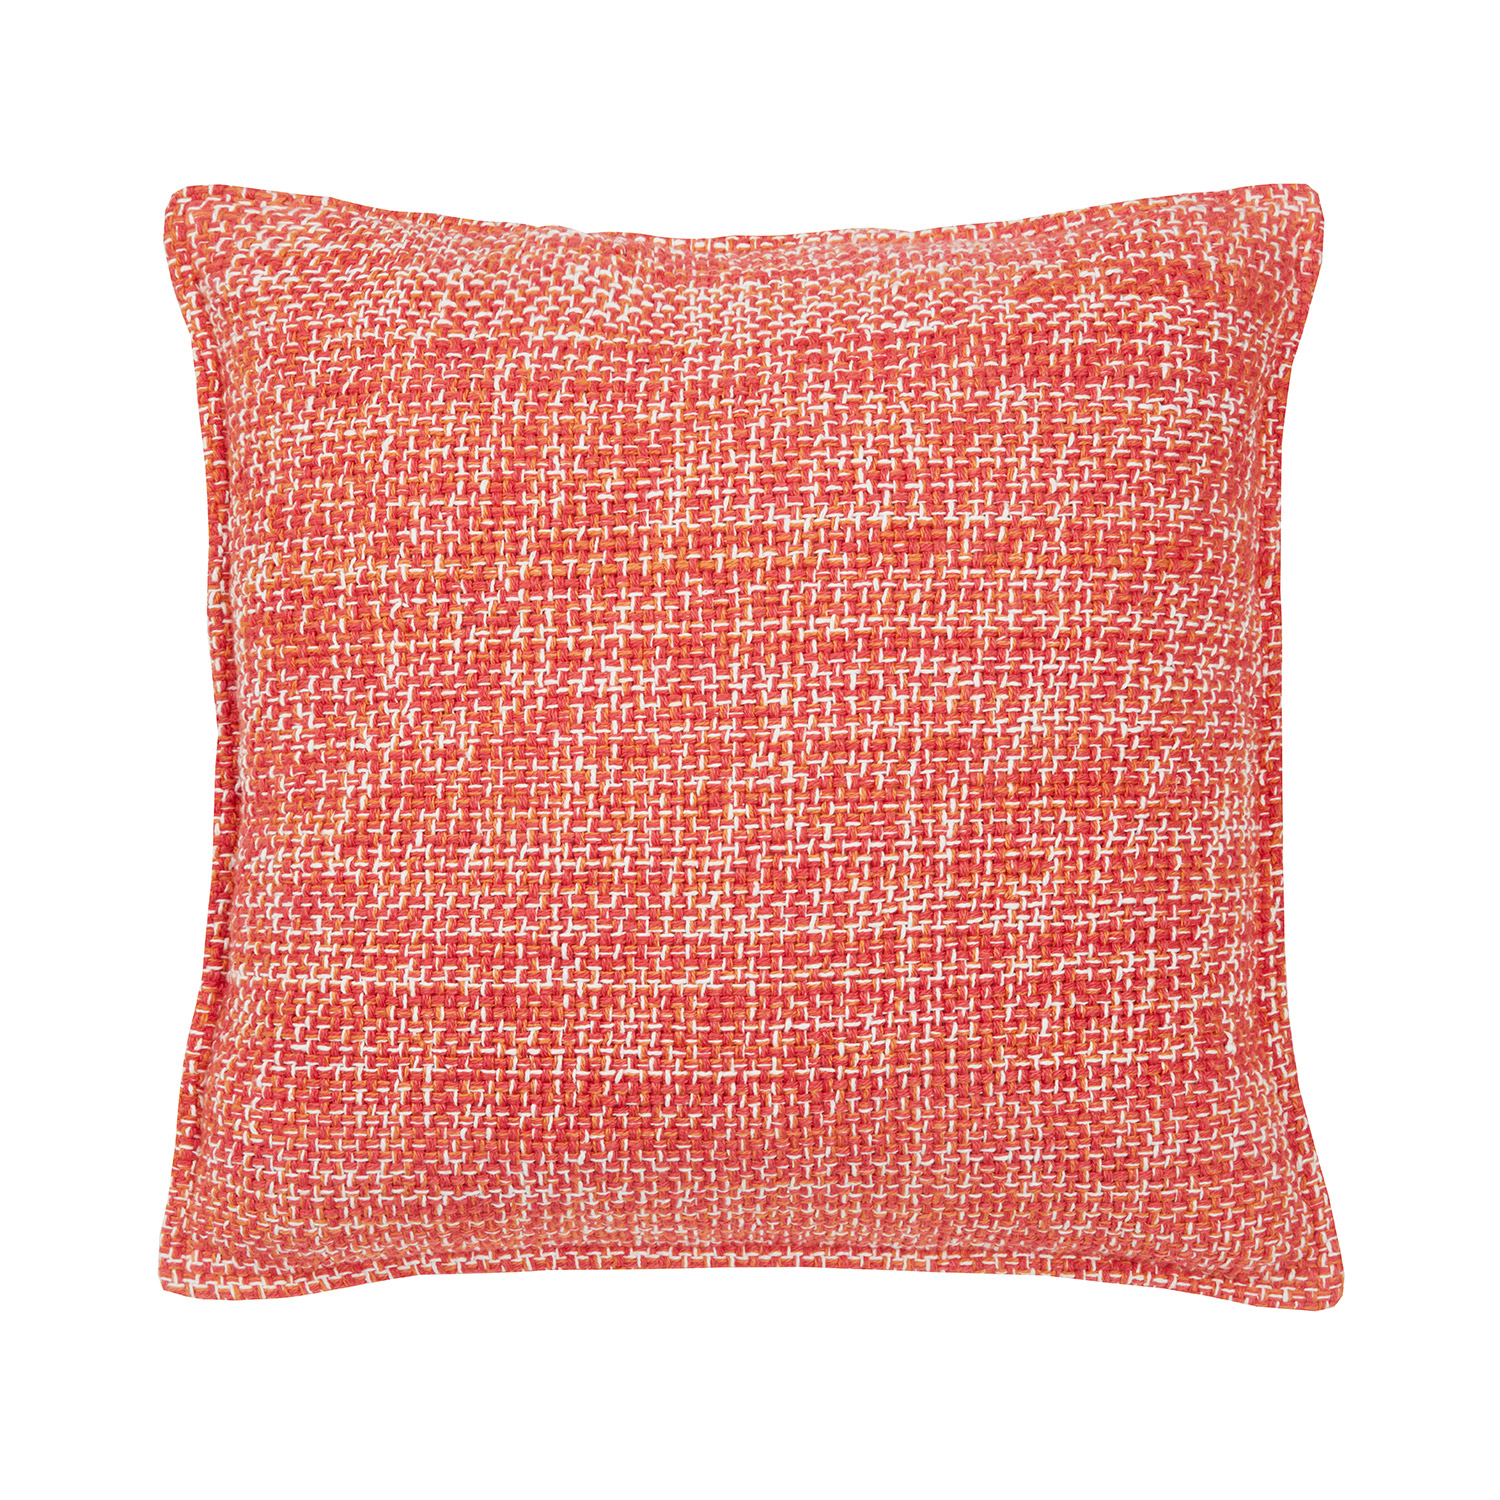 Mika Coral Luxury Woven Texture Cotton Filled Square Cushion